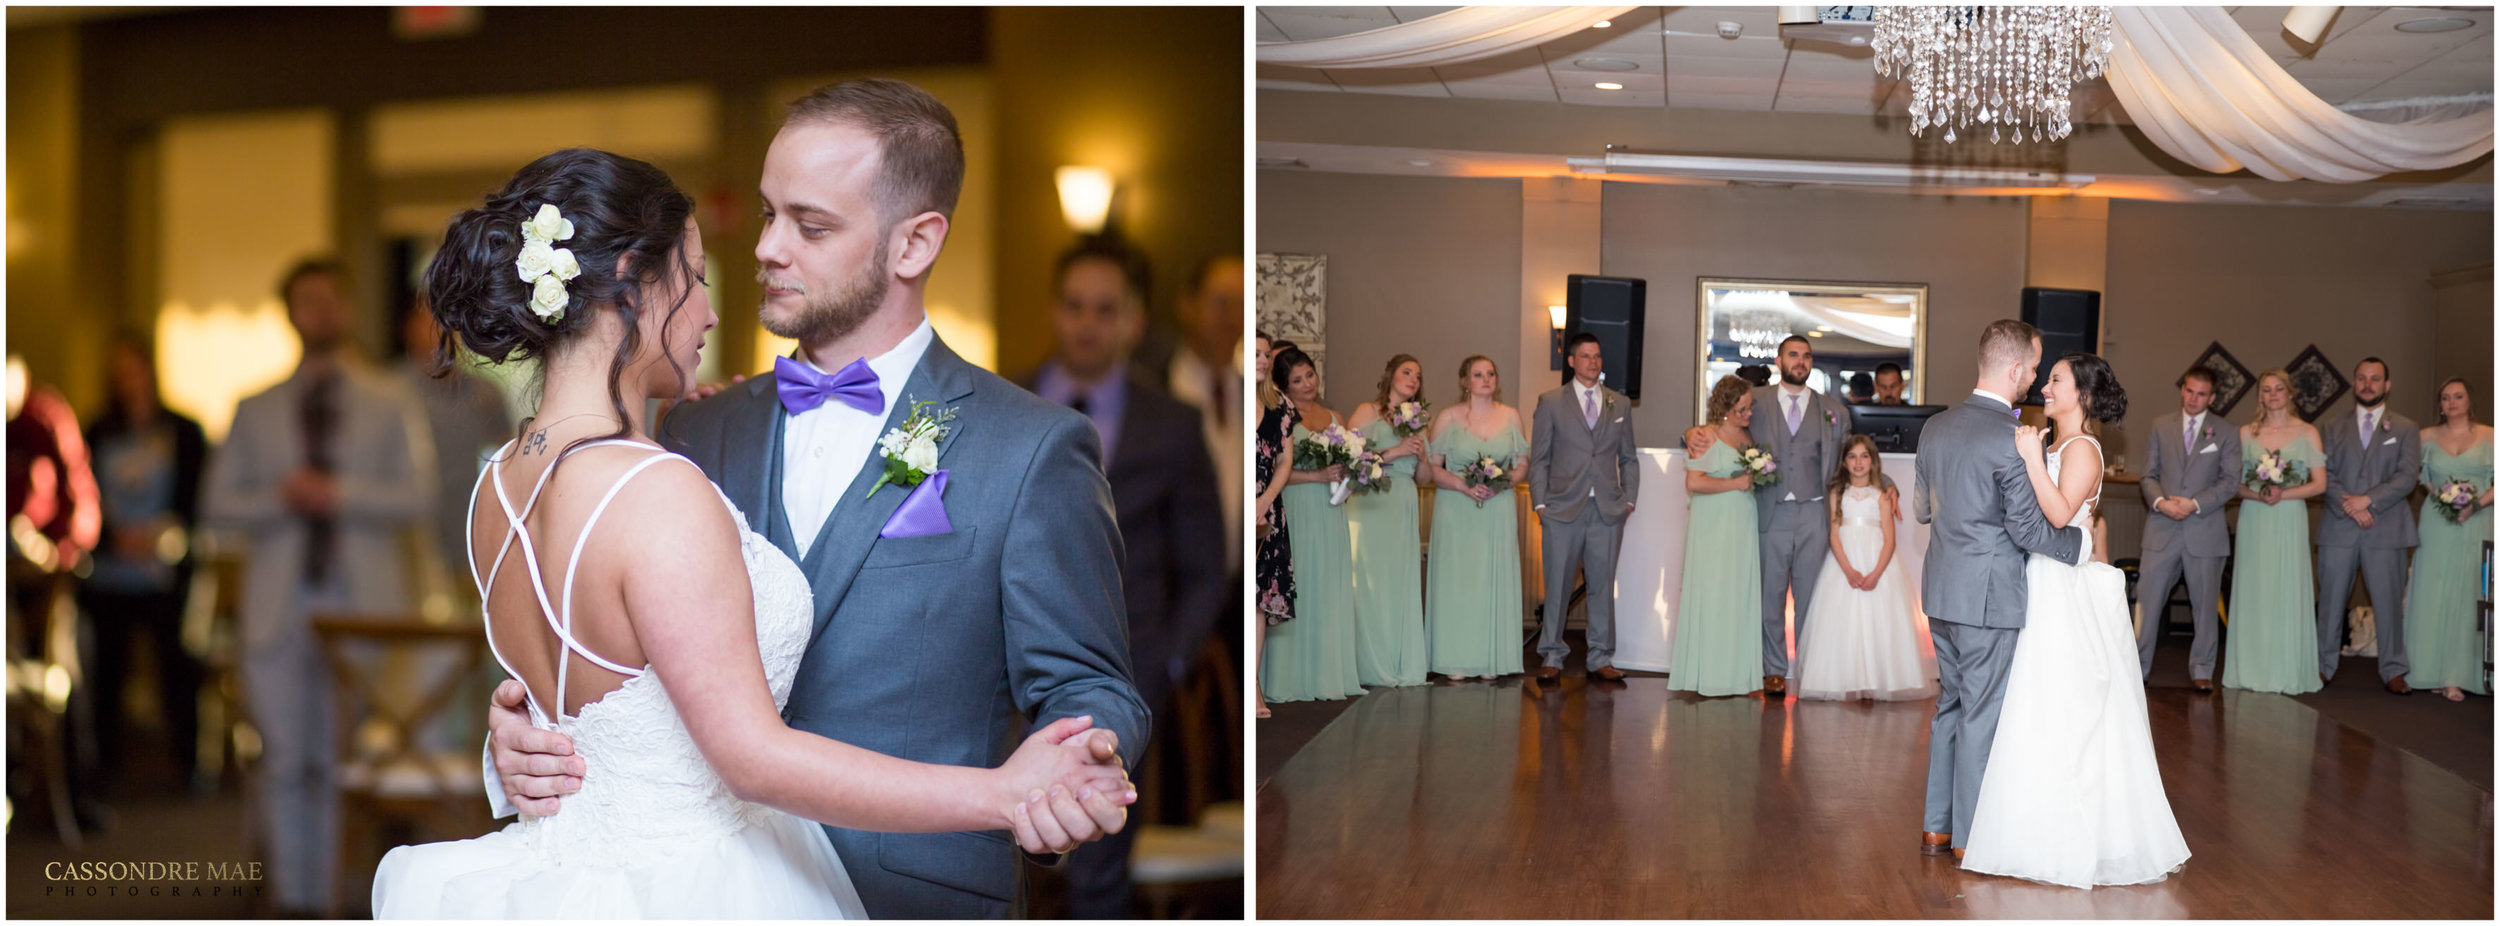 Cassondre Mae Photography Woodloch Resort Wedding 35.jpg